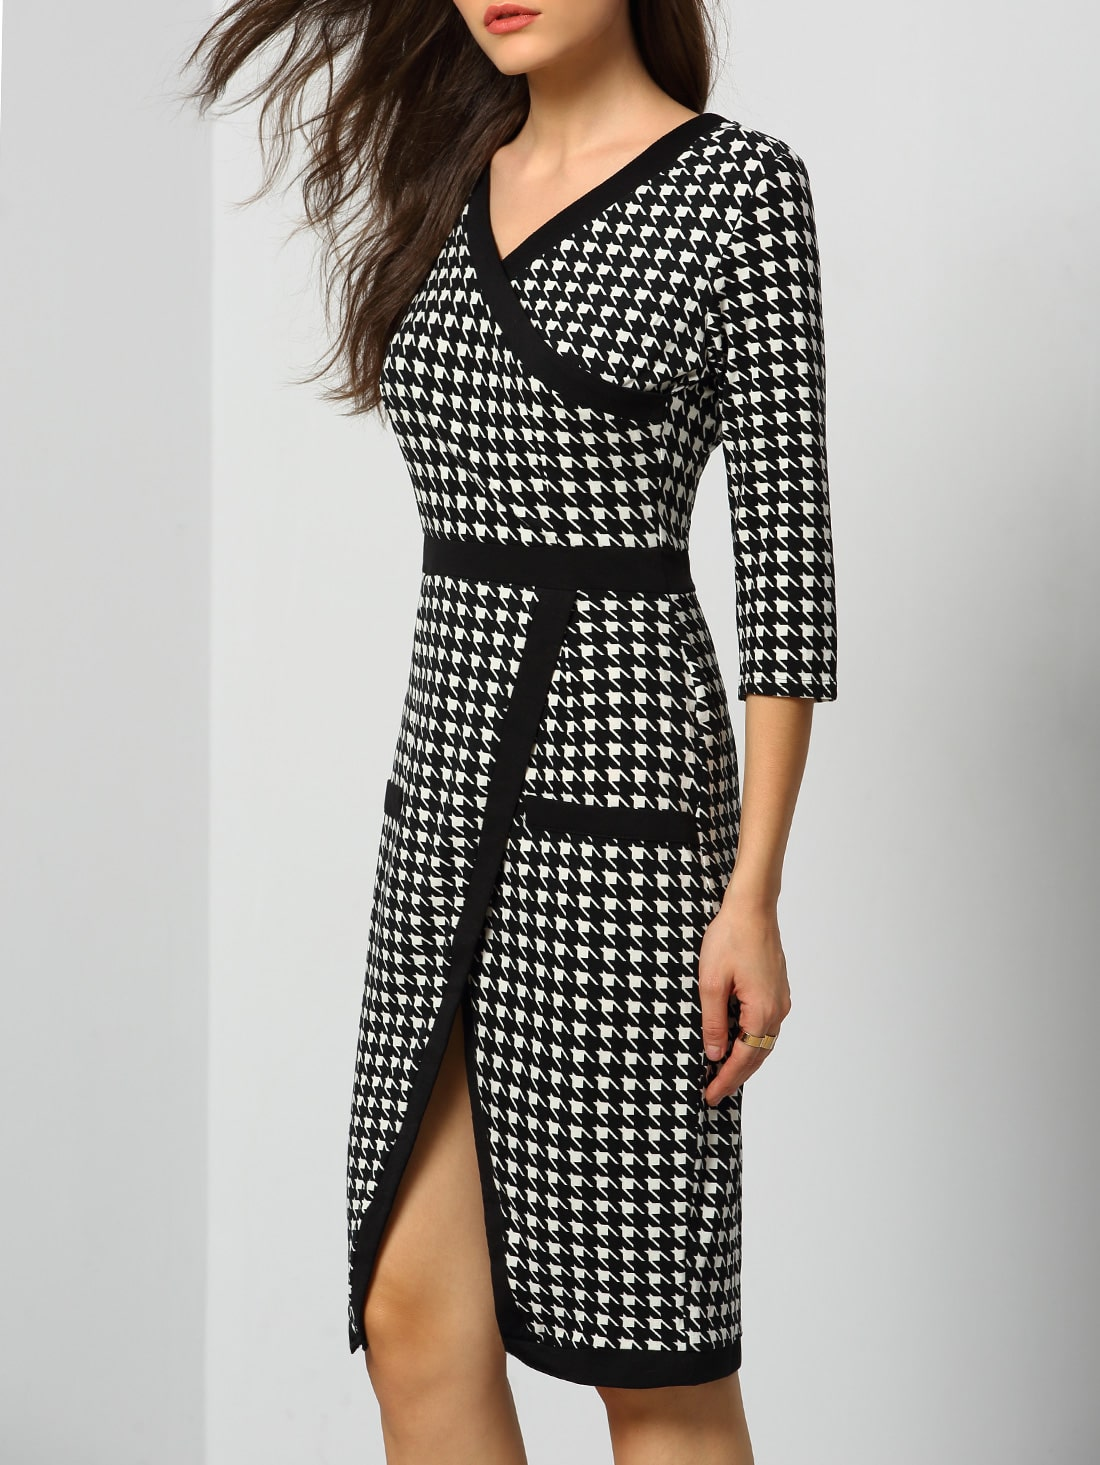 Every day and all through the night you can wear this 60s Monica Houndstooth Dress in Black and White! But it's the amazing black and white houndstooth print that gives her a typical 60s vibe. Made from a stretchy, supple supple fabric for a perfect fit and therefore a joy to wear. Create a playful sixties look by adding black accessories.